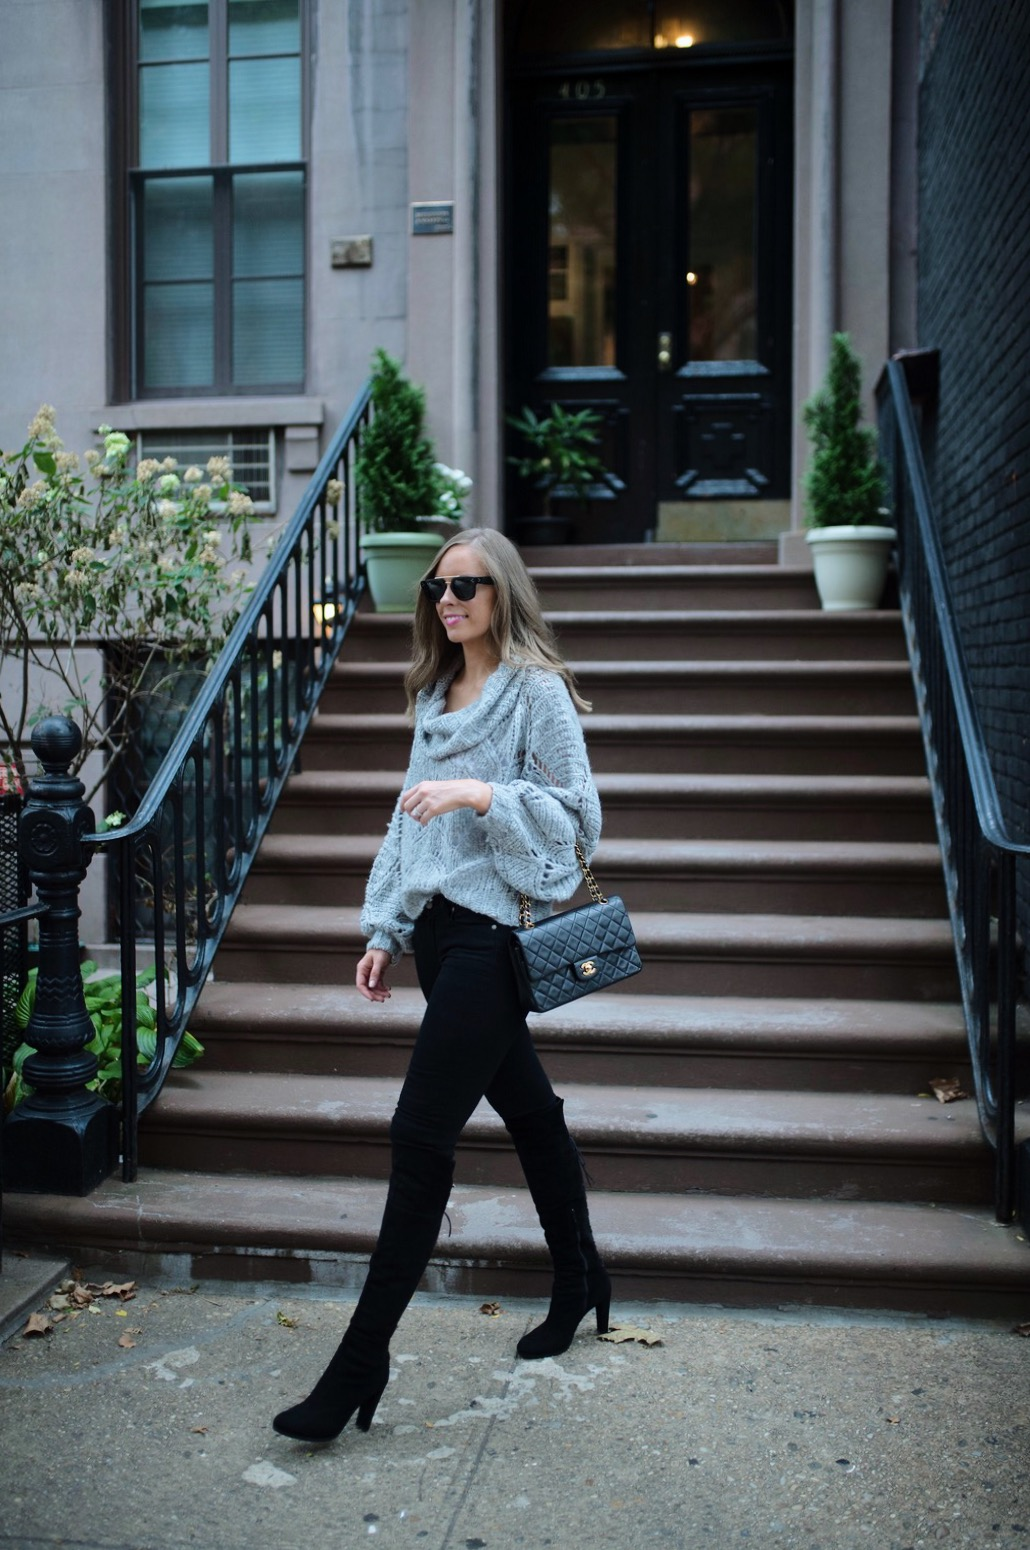 minimalist outfit style pinterest fashion ideas gray and black outfit blogger new york street style